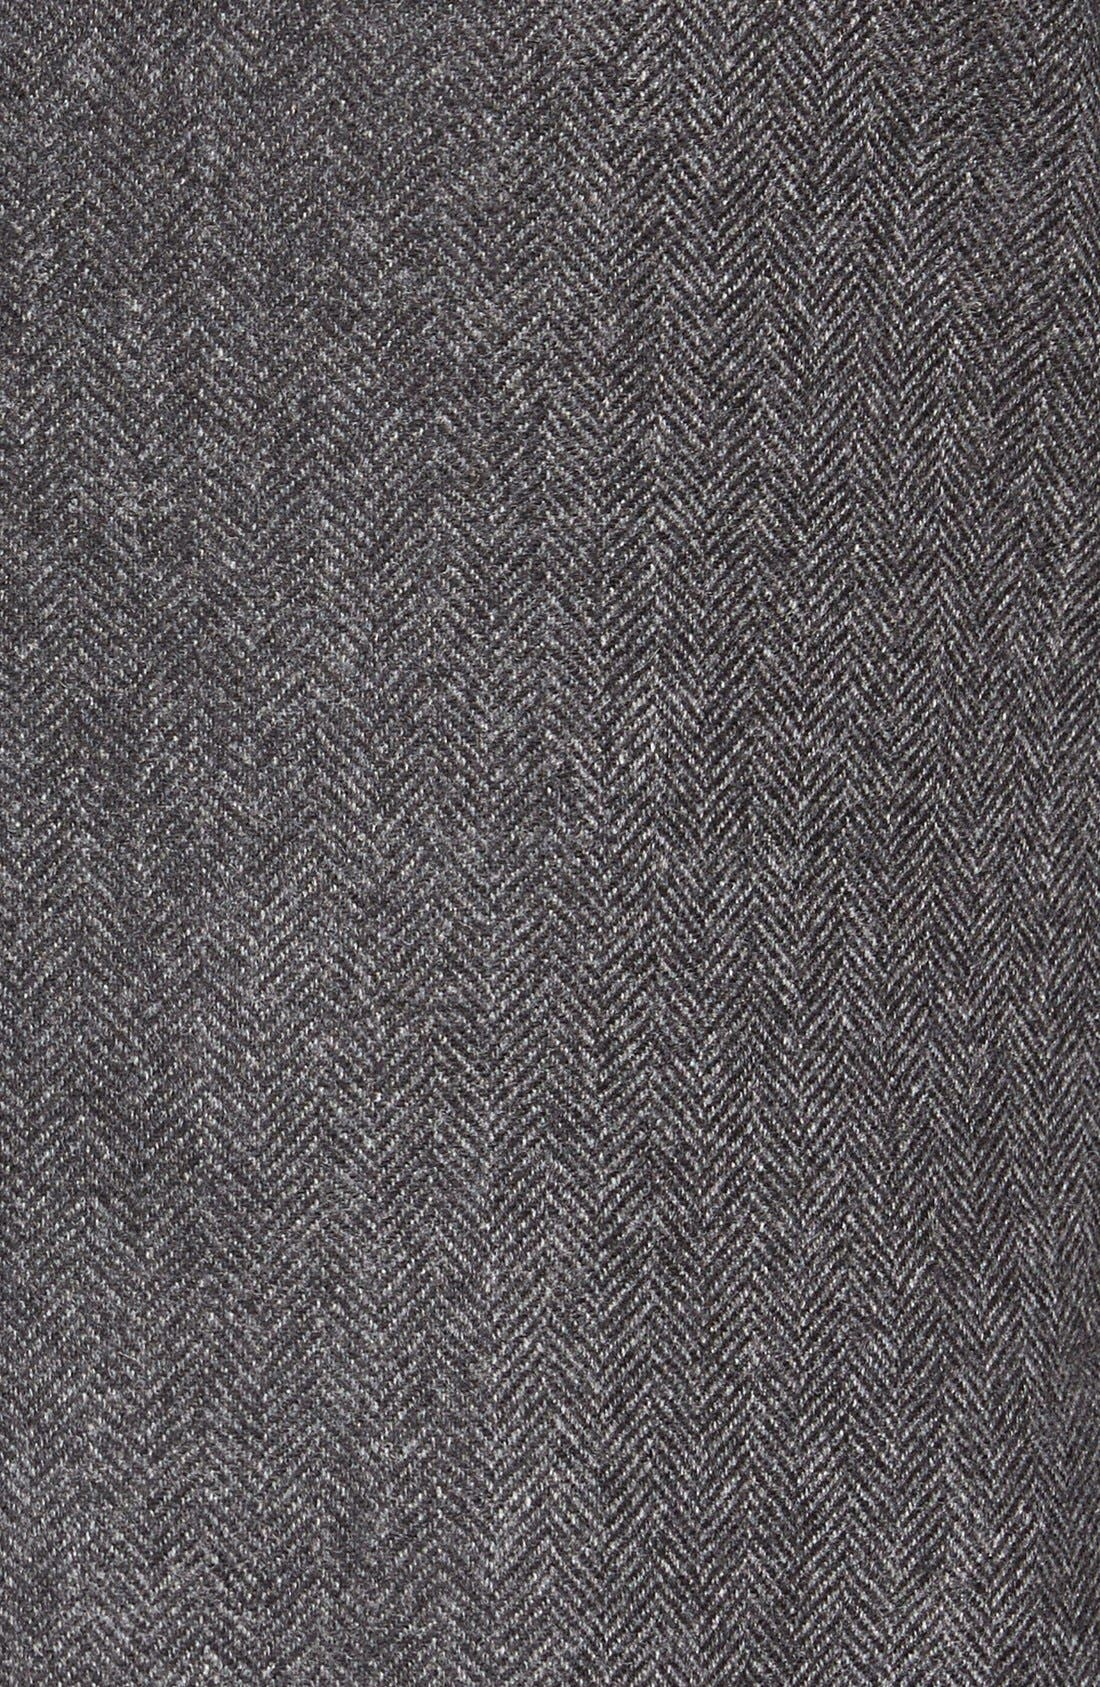 Beckett Classic Fit Herringbone Cashmere Sport Coat,                             Alternate thumbnail 5, color,                             Charcoal